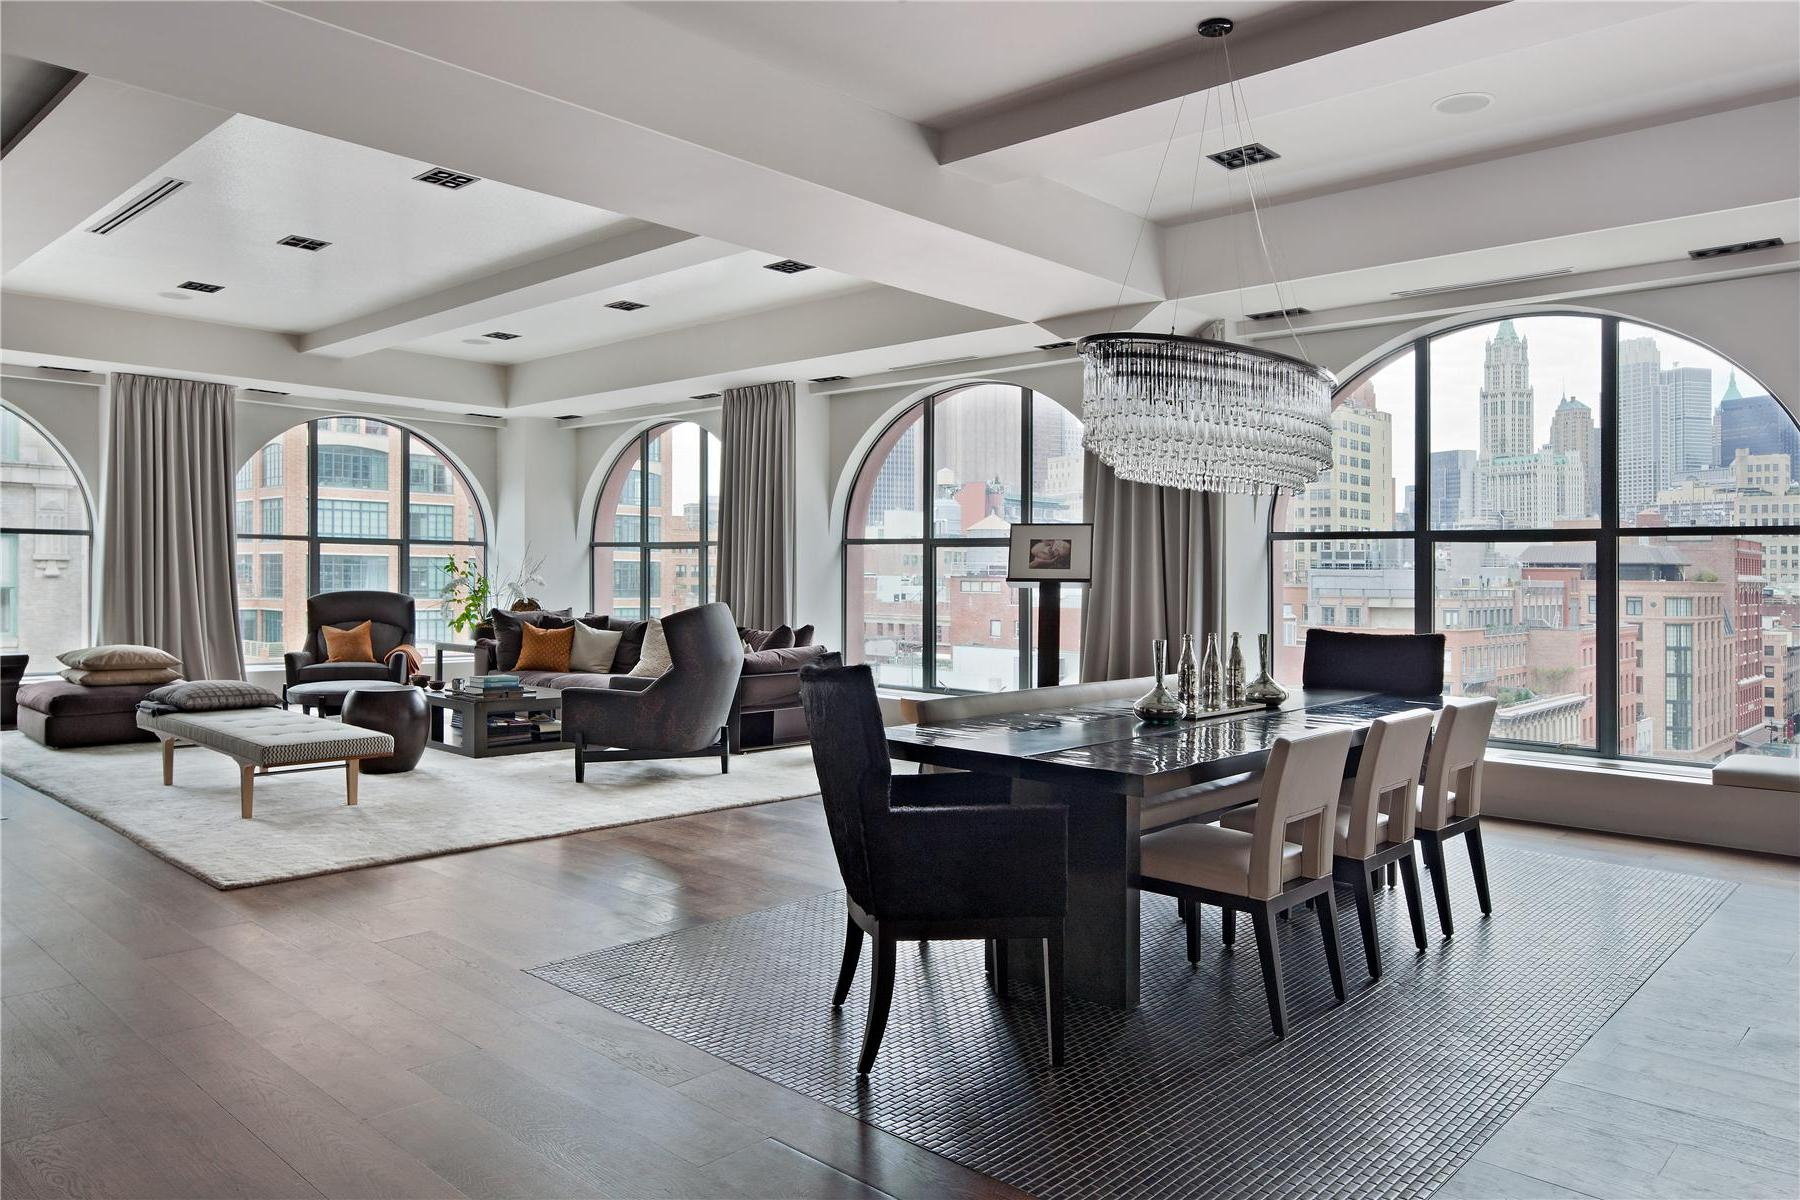 New york loft living oliver burns for Loft new york affitto